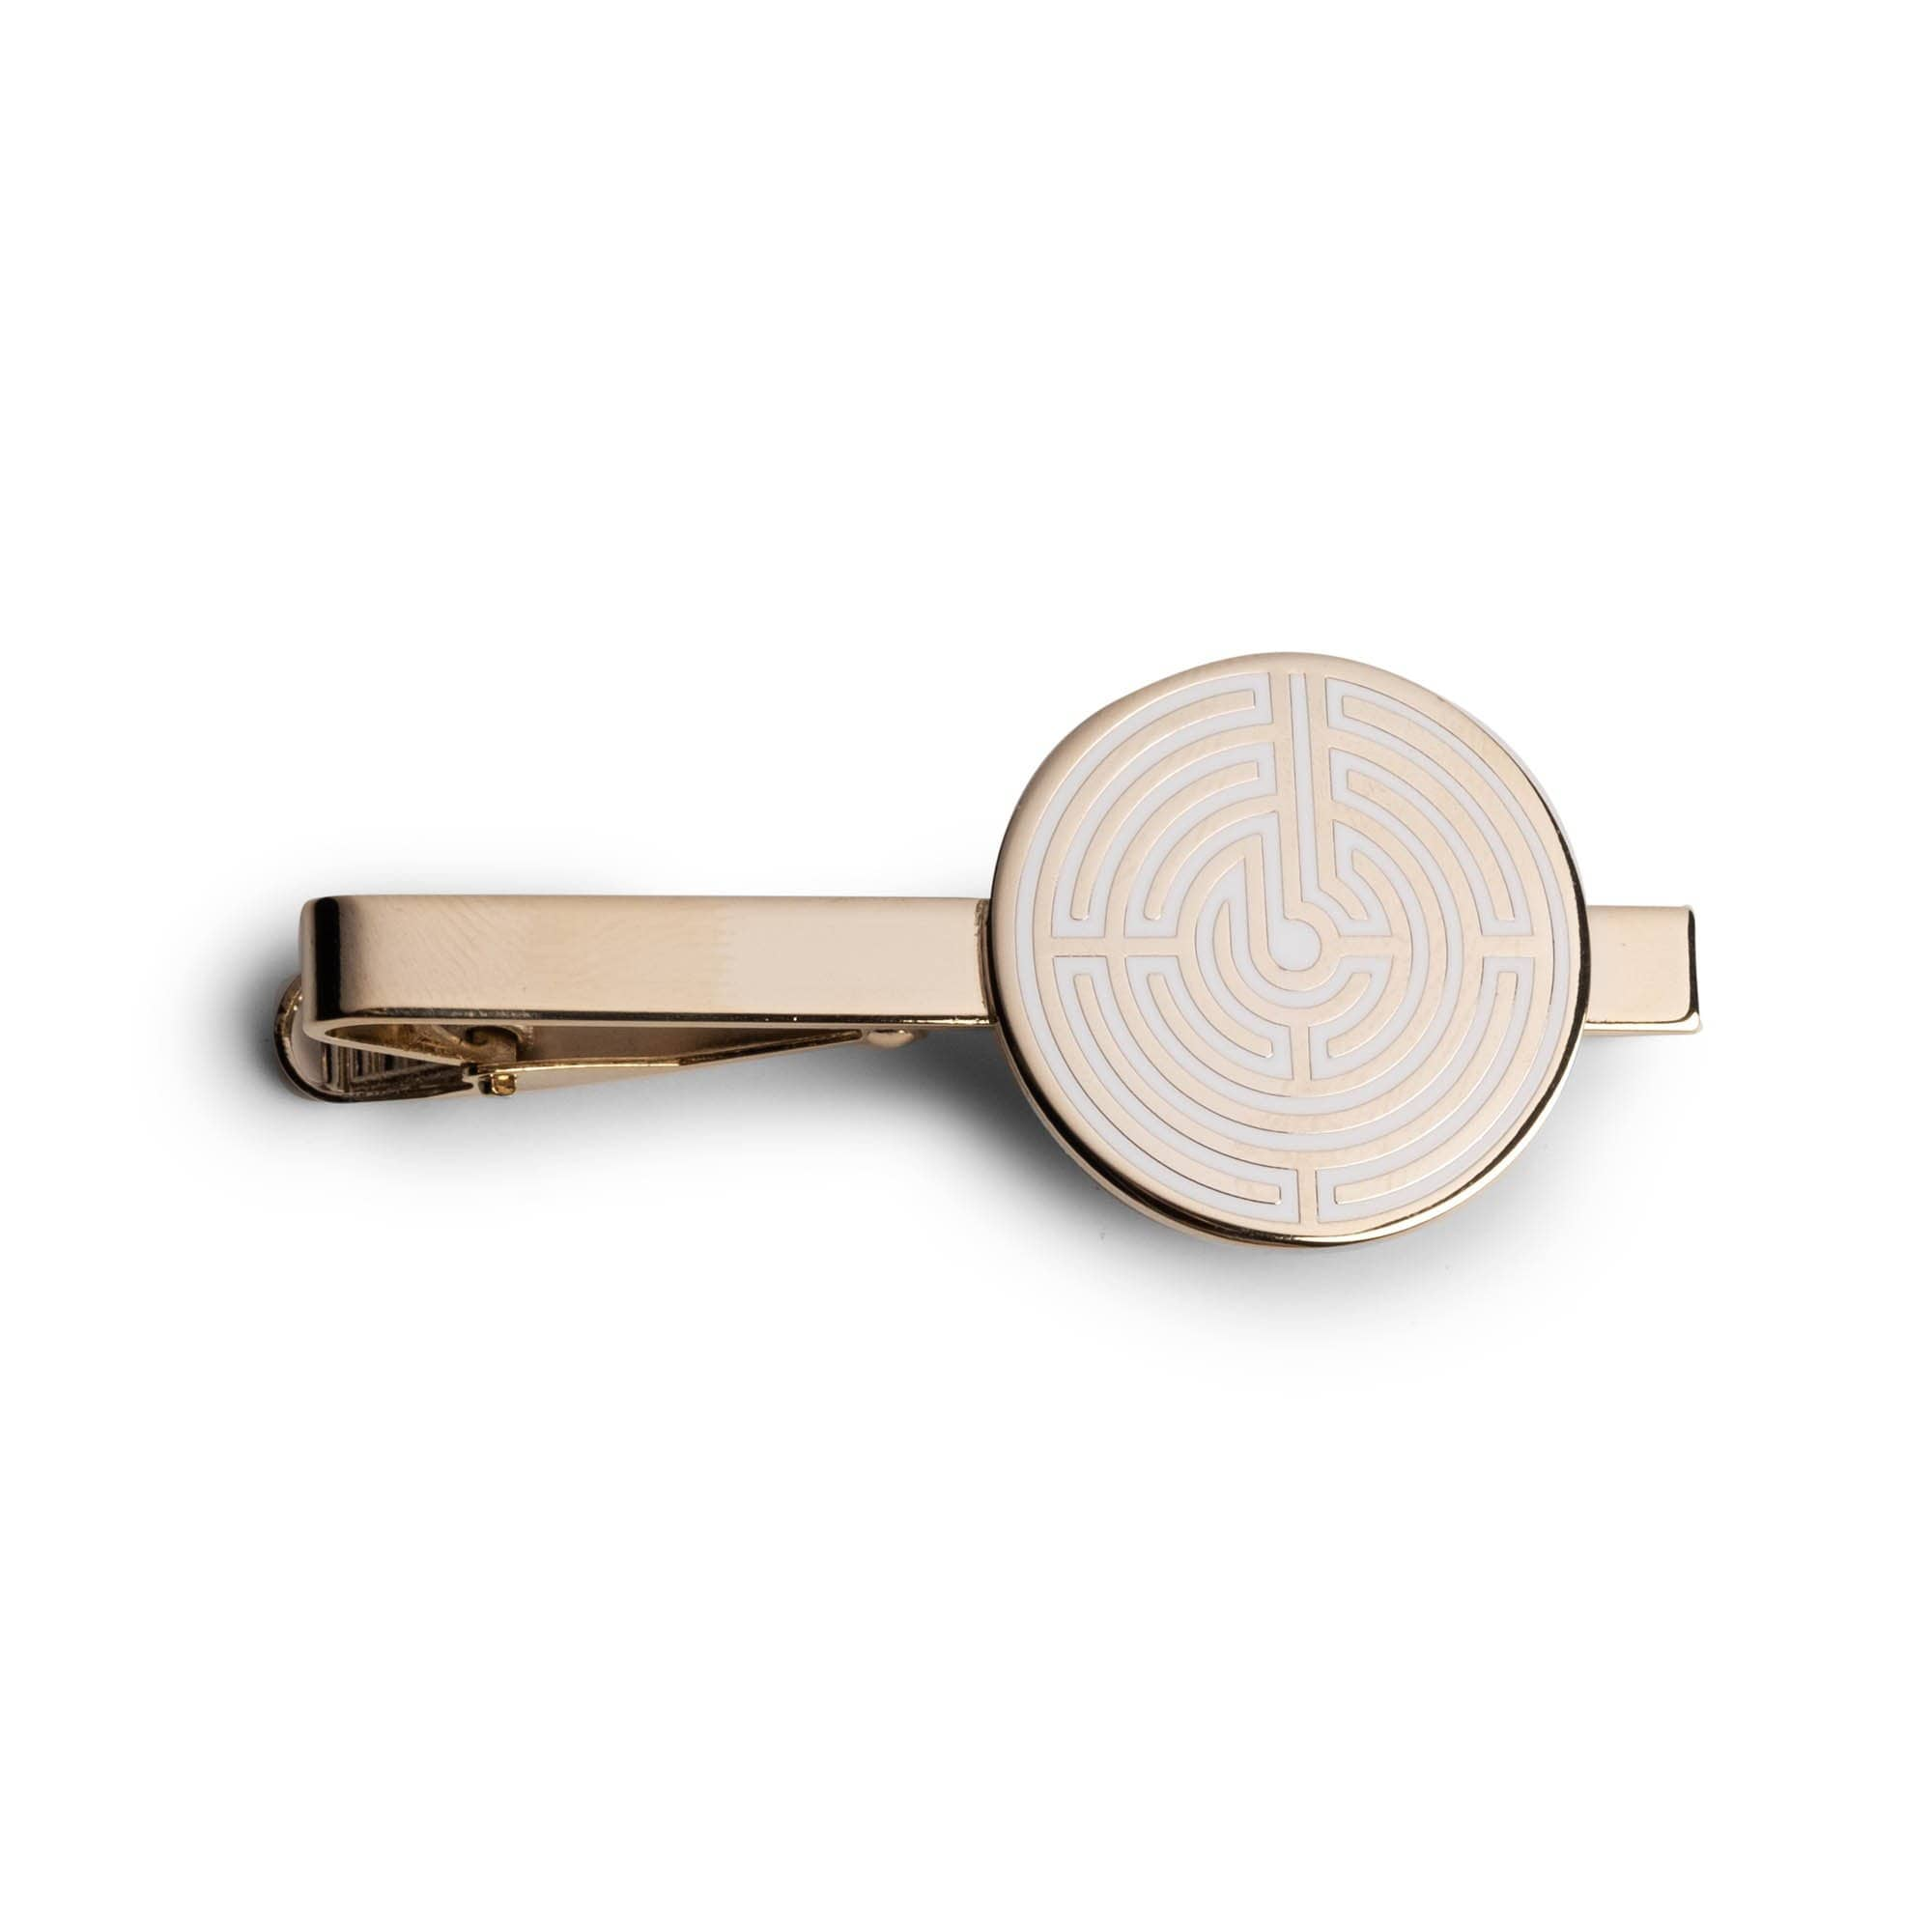 Grace Hopper / Nanosecond Tie Bar